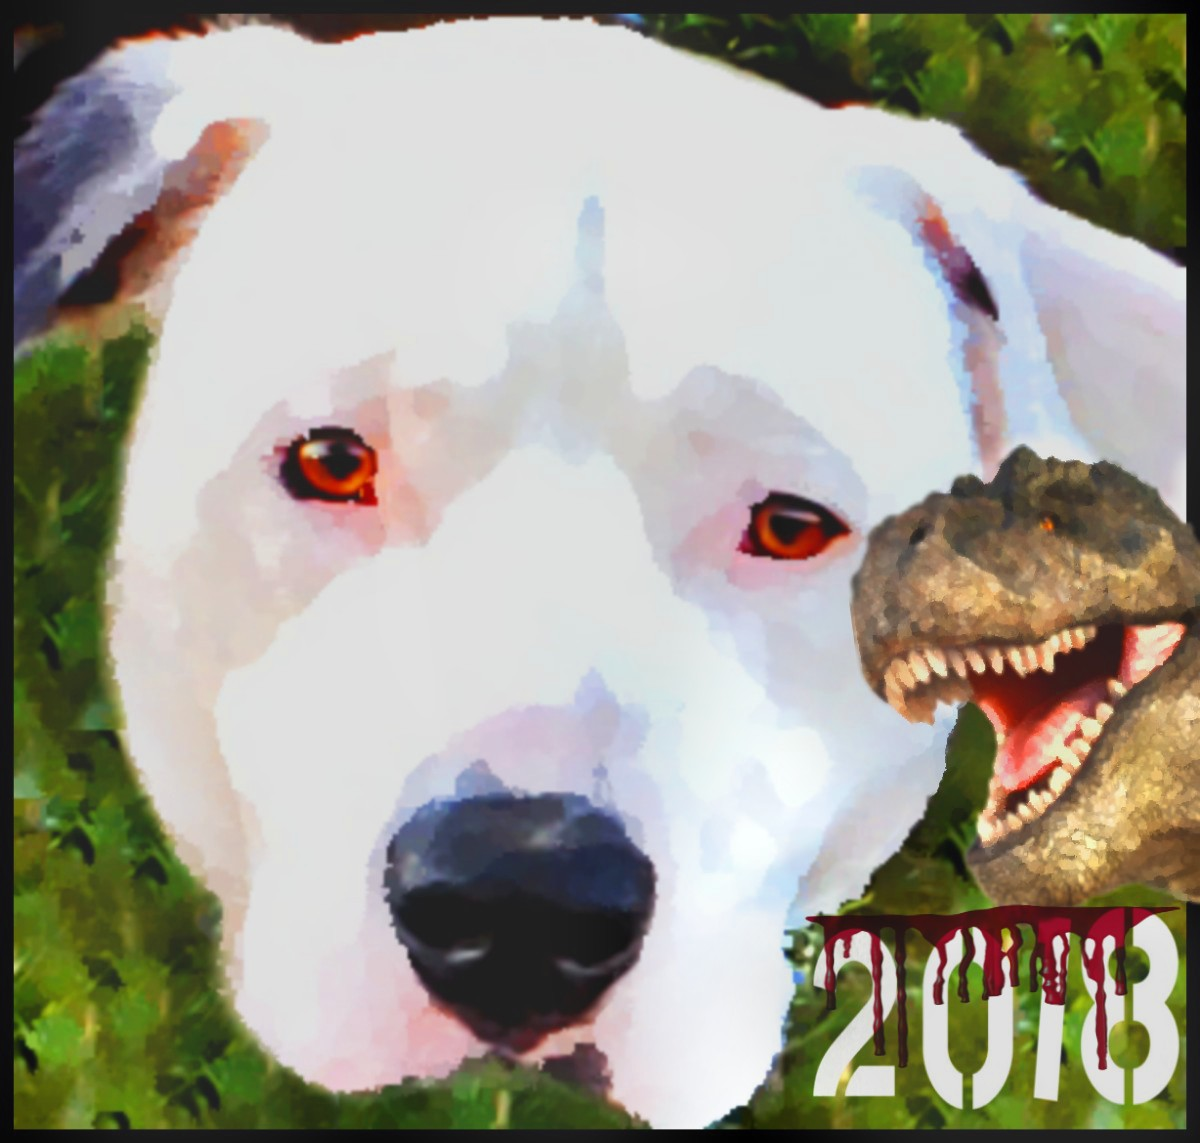 43 Americans & Canadians killed by dogs in 2018, 34 by pit bulls